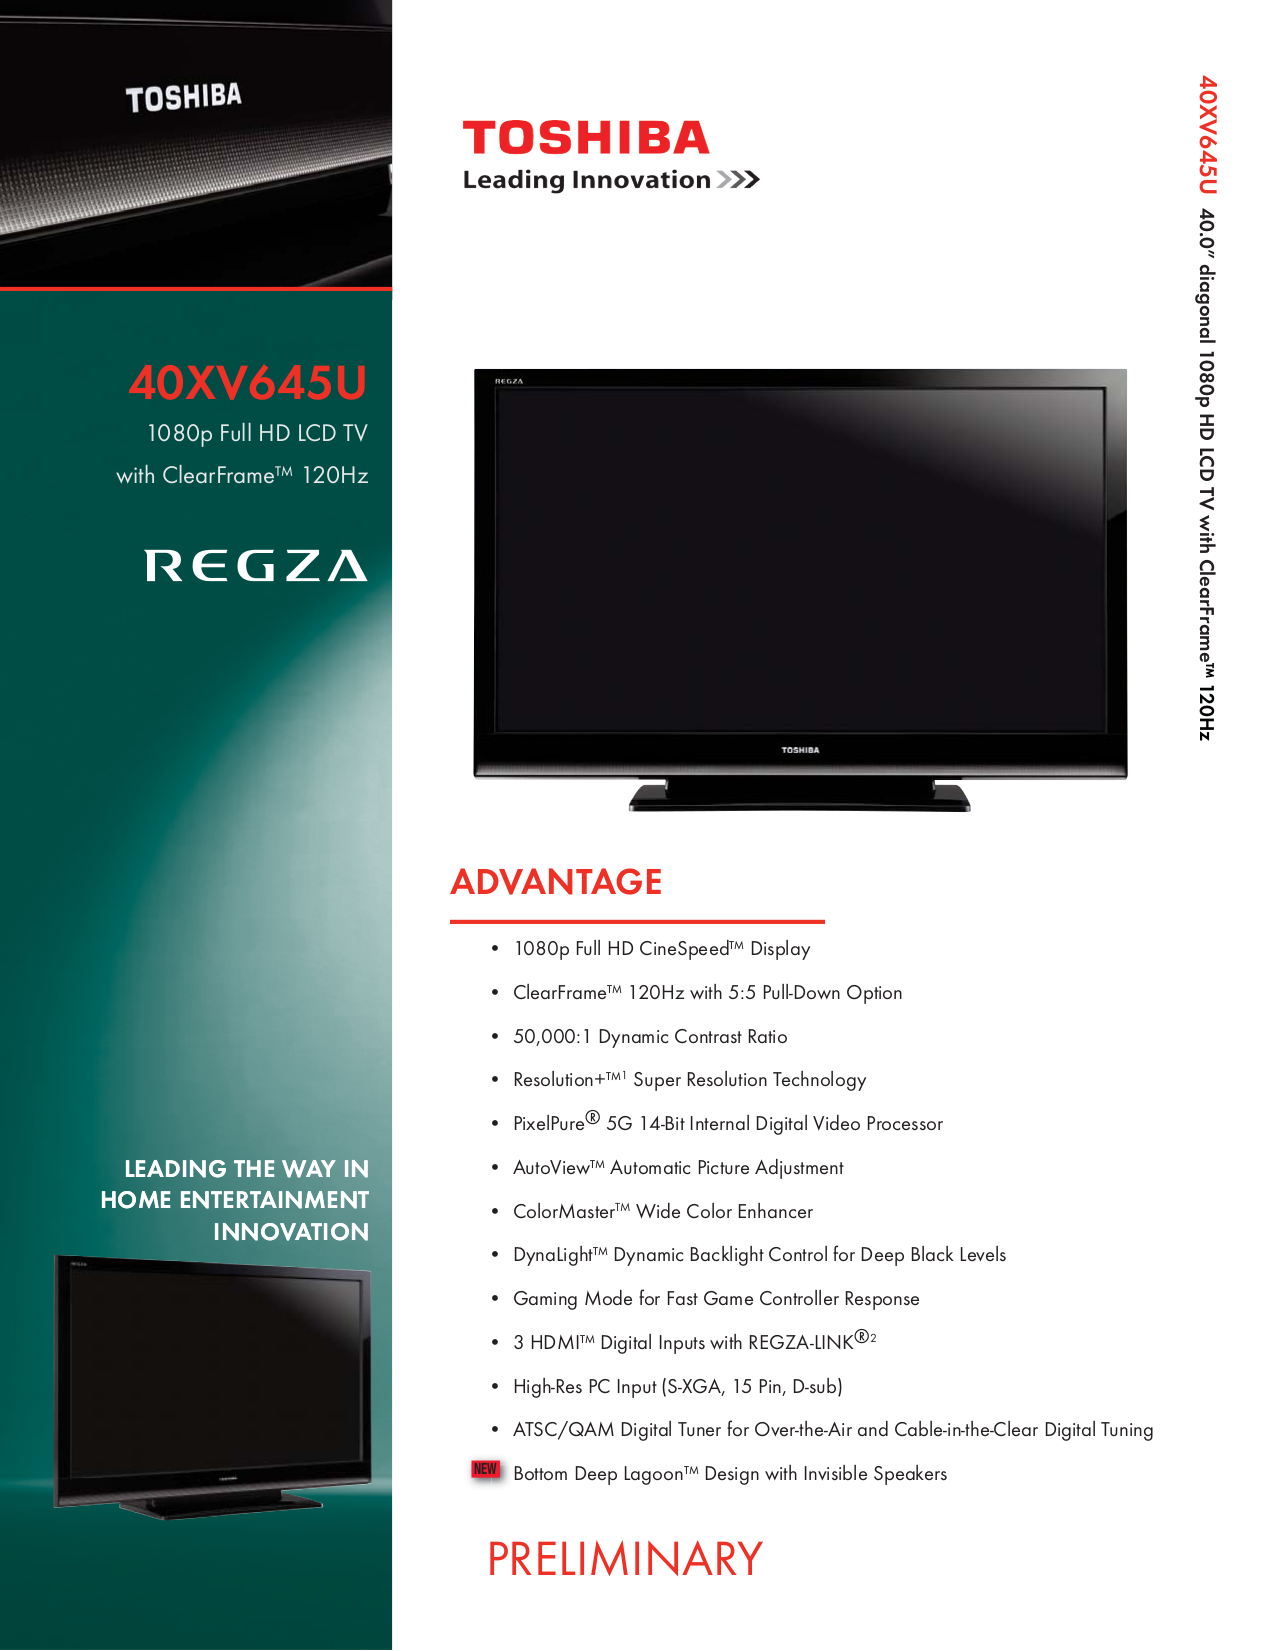 Download free pdf for toshiba regza 40xv645u tv manual.